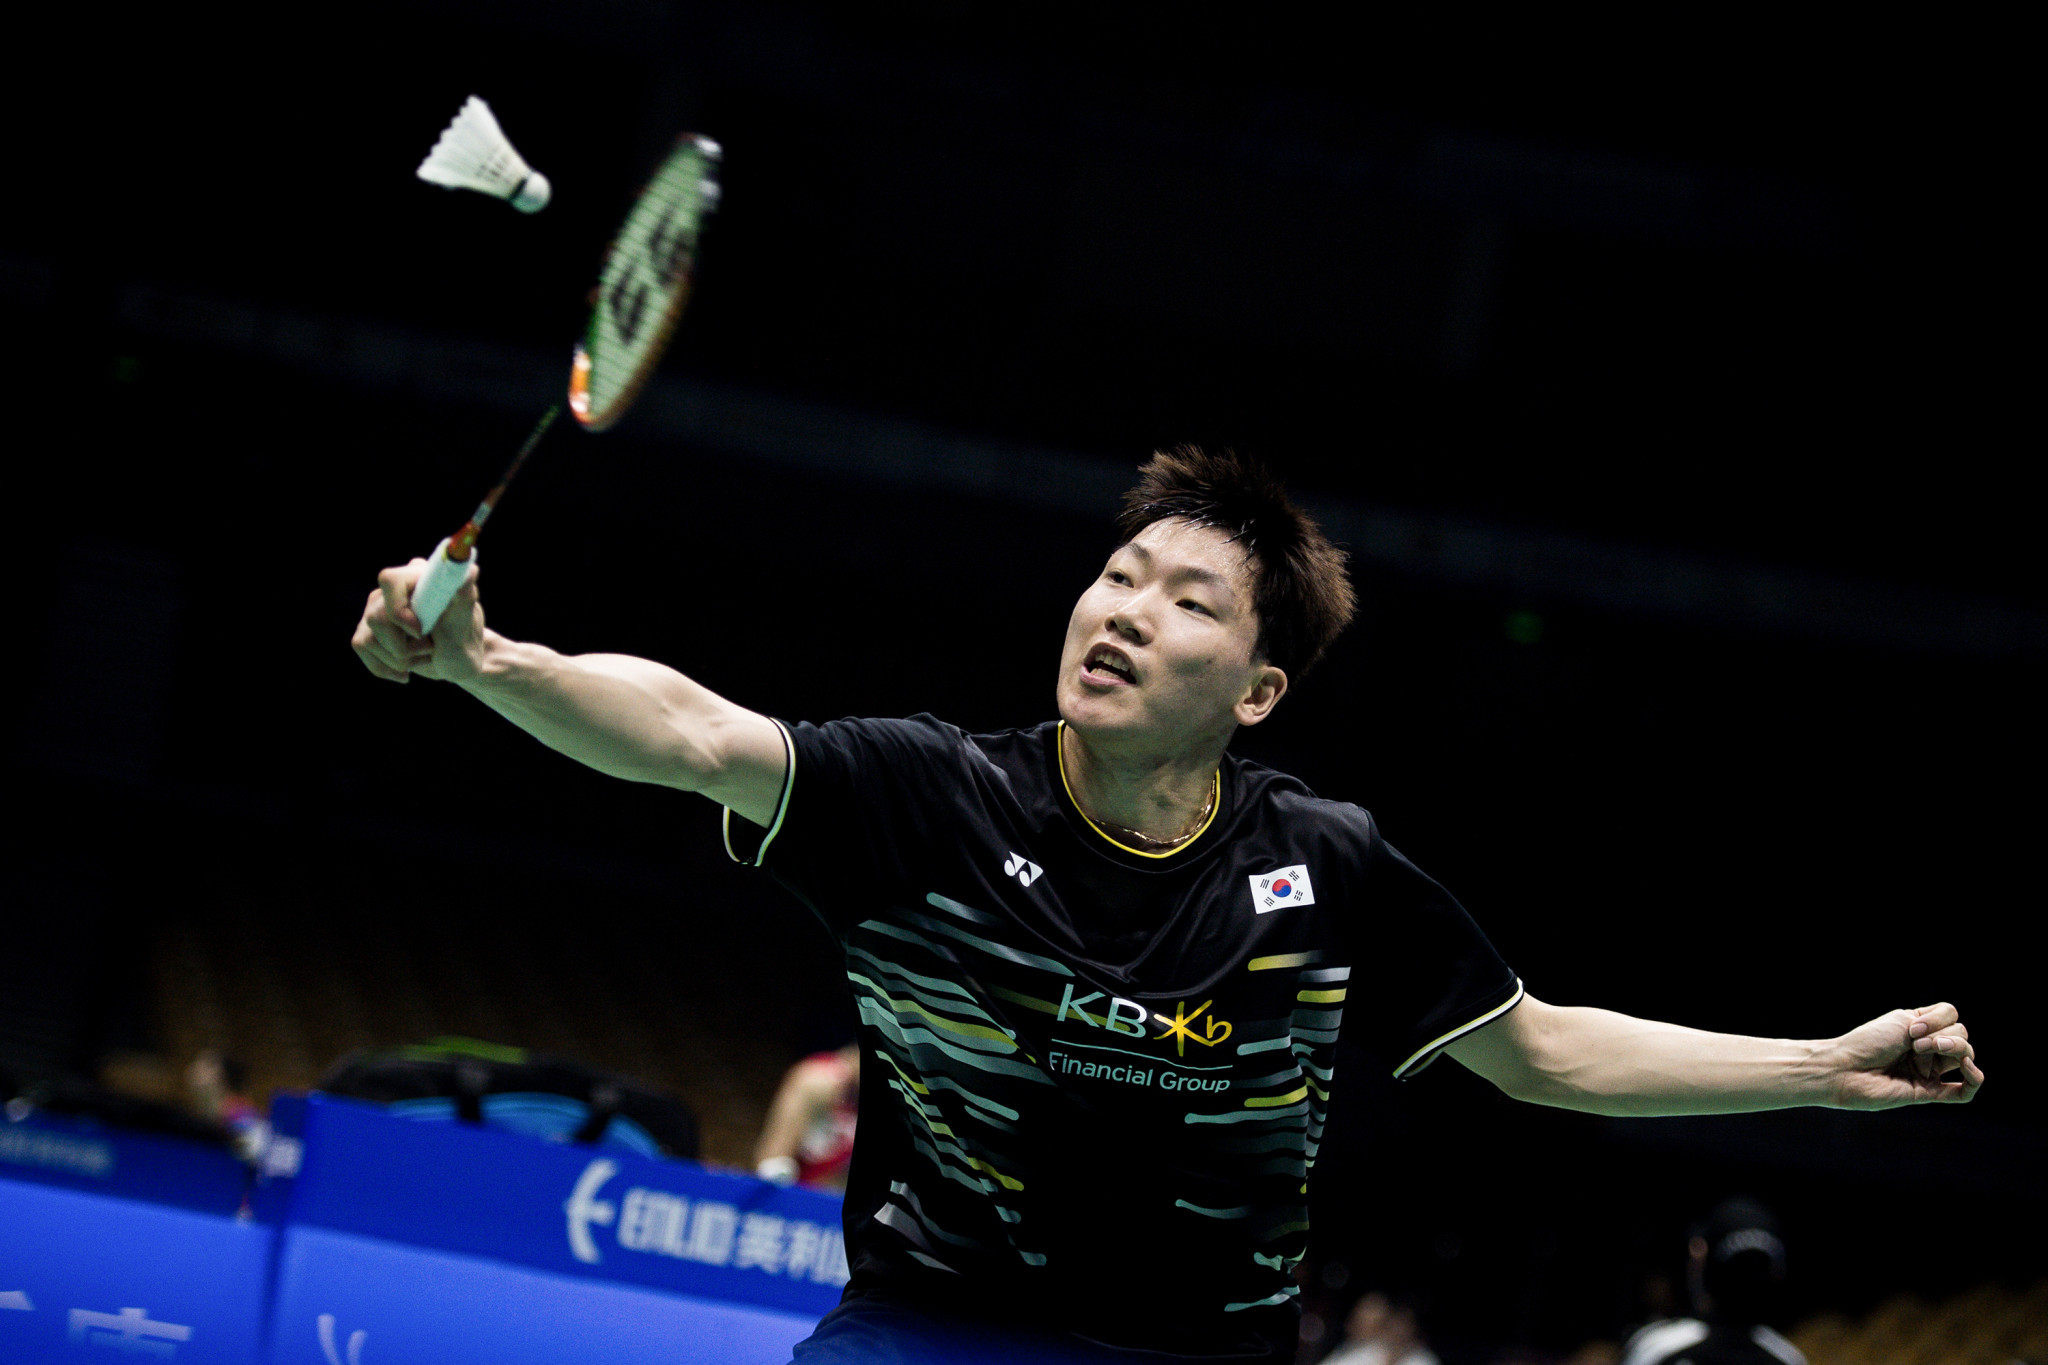 South Korea's Lee Dong-keun heads up the men's entries in California ©Getty Images